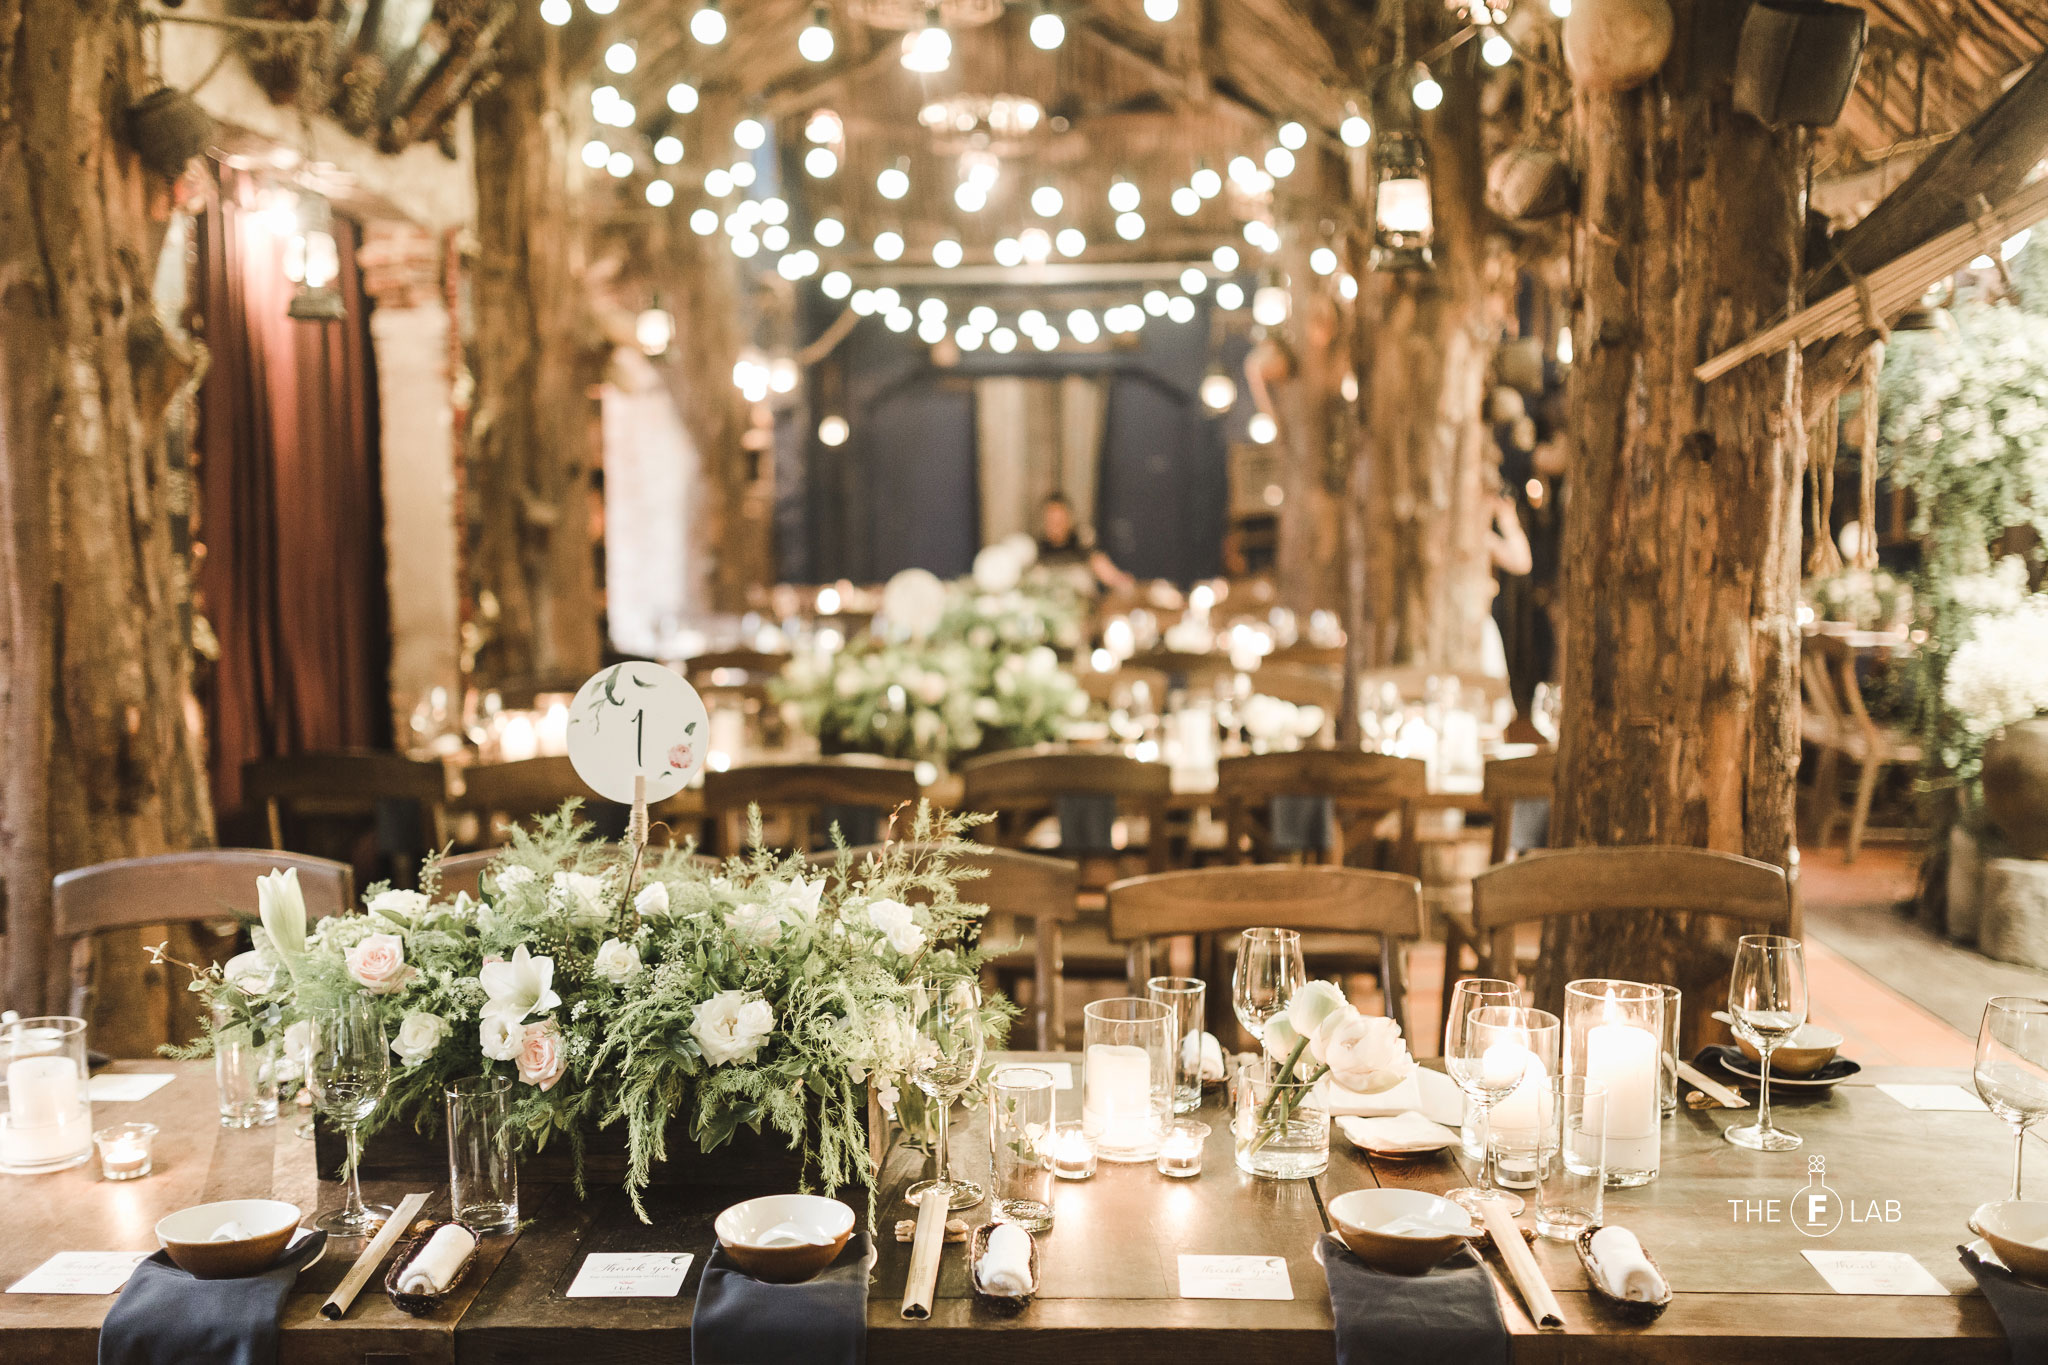 THE VENUE - Khanh & Huy wedding was our second take on The Forest. The rustic and cozy space of this restaurant is our ultimate inspiration